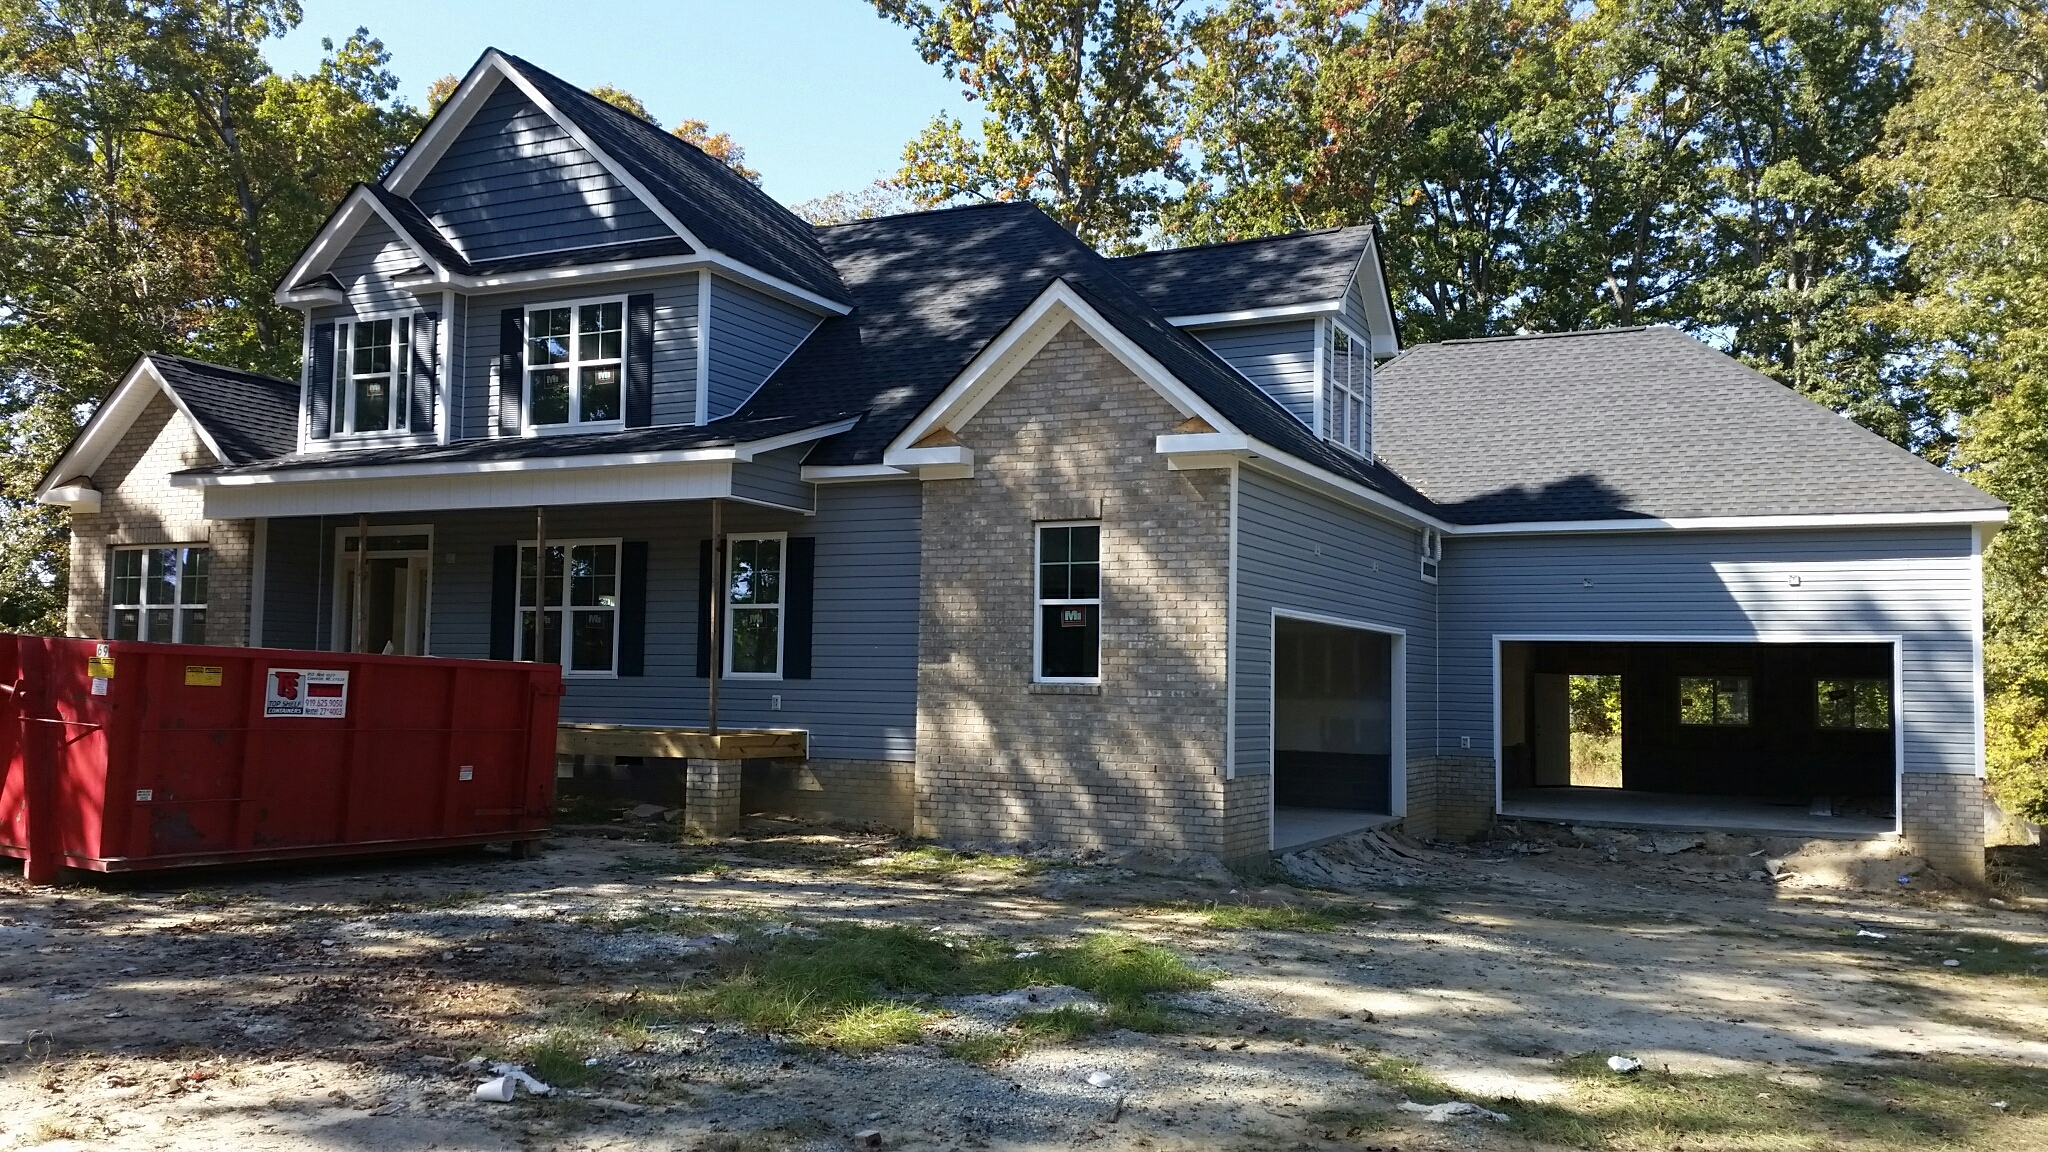 New custom home close to completion! Looking for a reliable residential home construction company in the Triangle Area? Call Bootham Builders' Licensed general contractors for a FREE ESTIMATE! (919) 610-1492